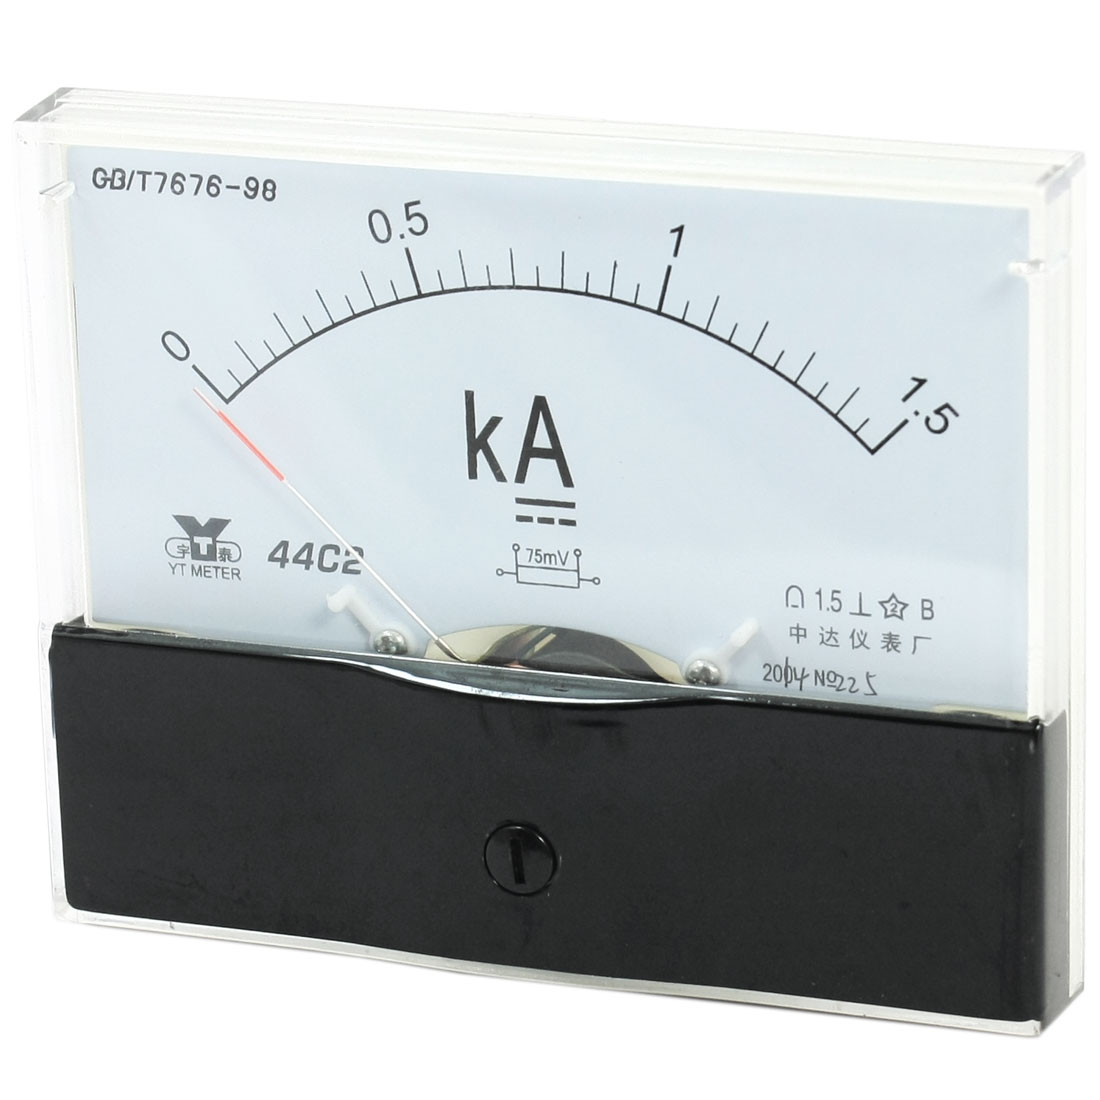 Rectangle Measurement Tool Analog Panel Ammeter Gauge DC 0 - 1.5KA Measuring Range 44C2